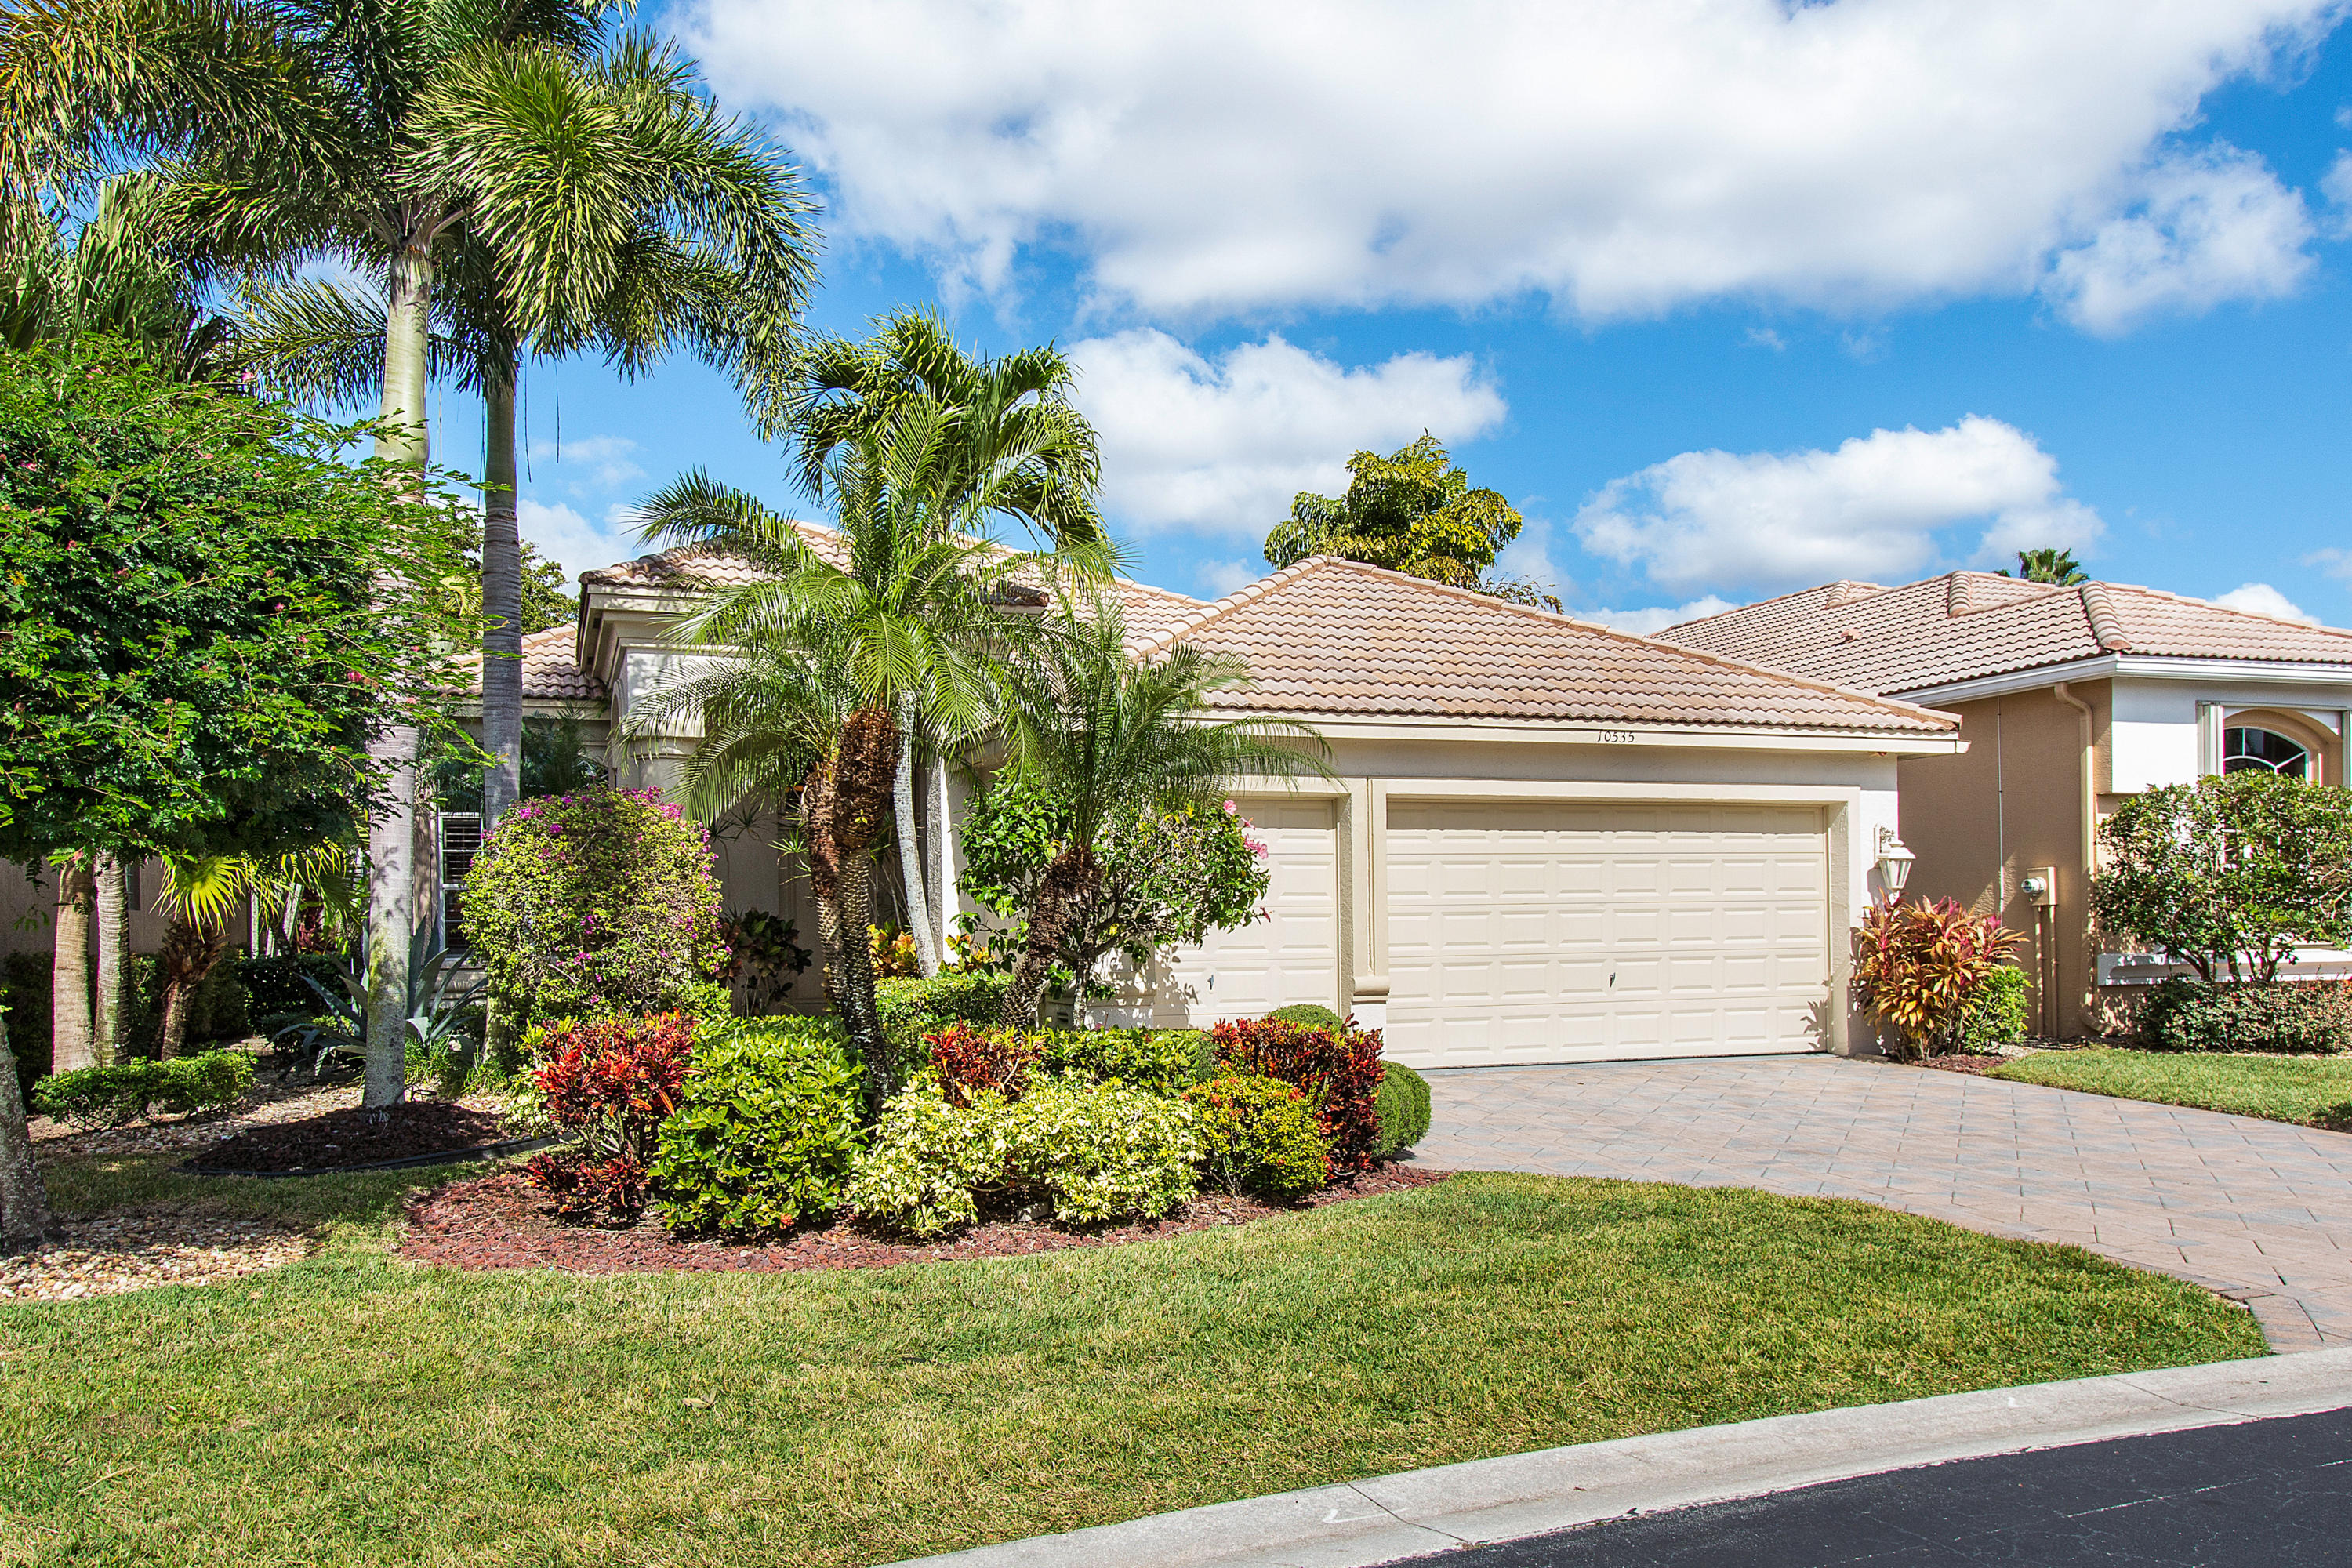 Home for sale in Wycliffe - Laurel Estates Lake Worth Florida